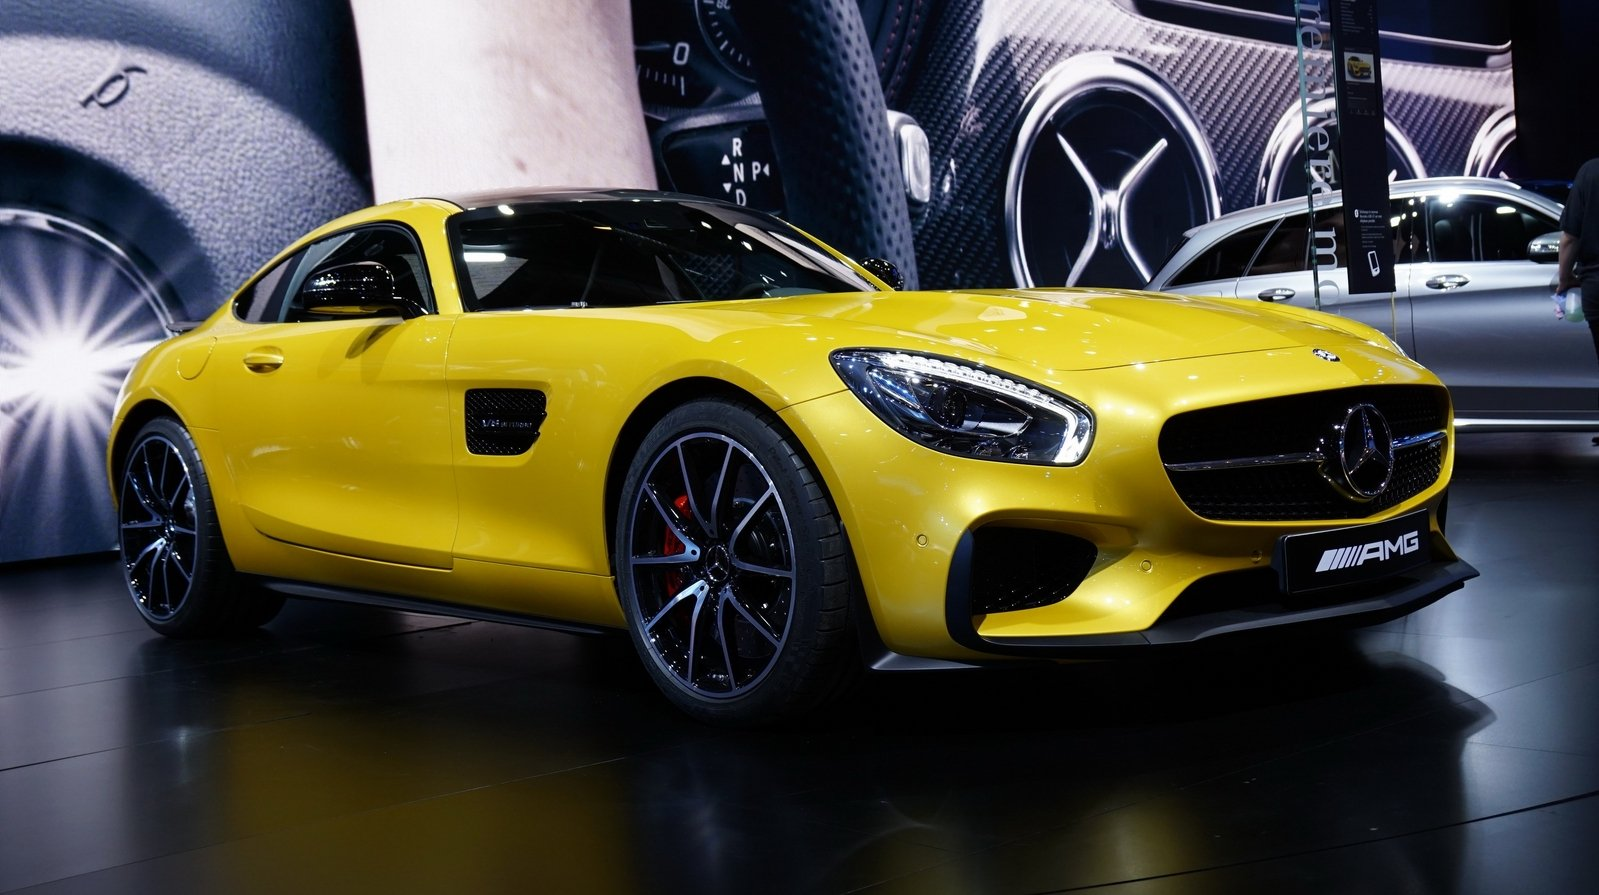 2016 Mercedes-AMG GT Review - Top Speed